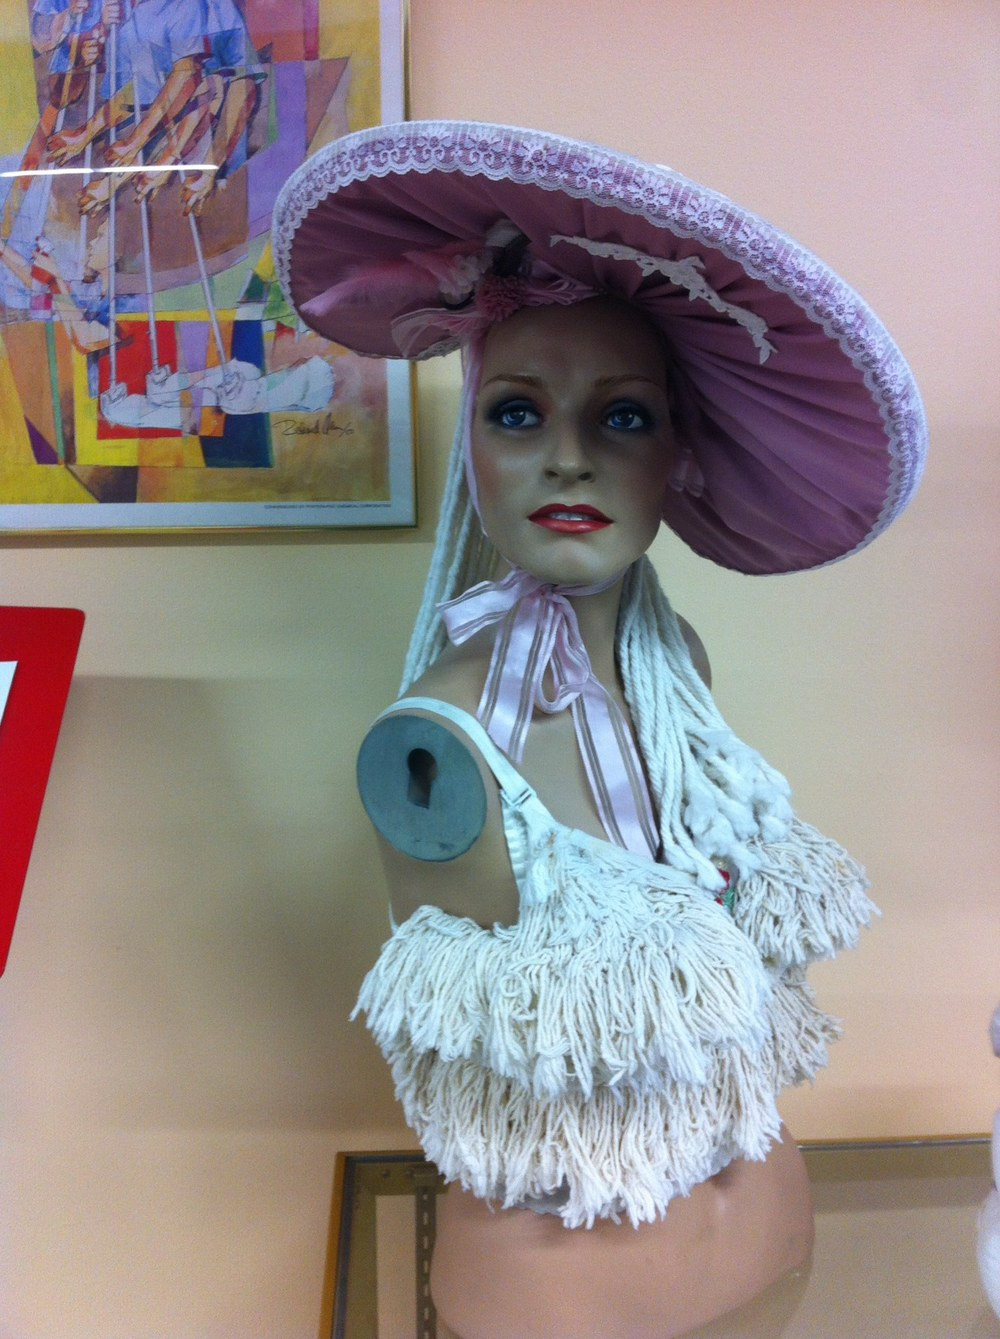 As part of the extensive collection of mops, there is a mop bra.